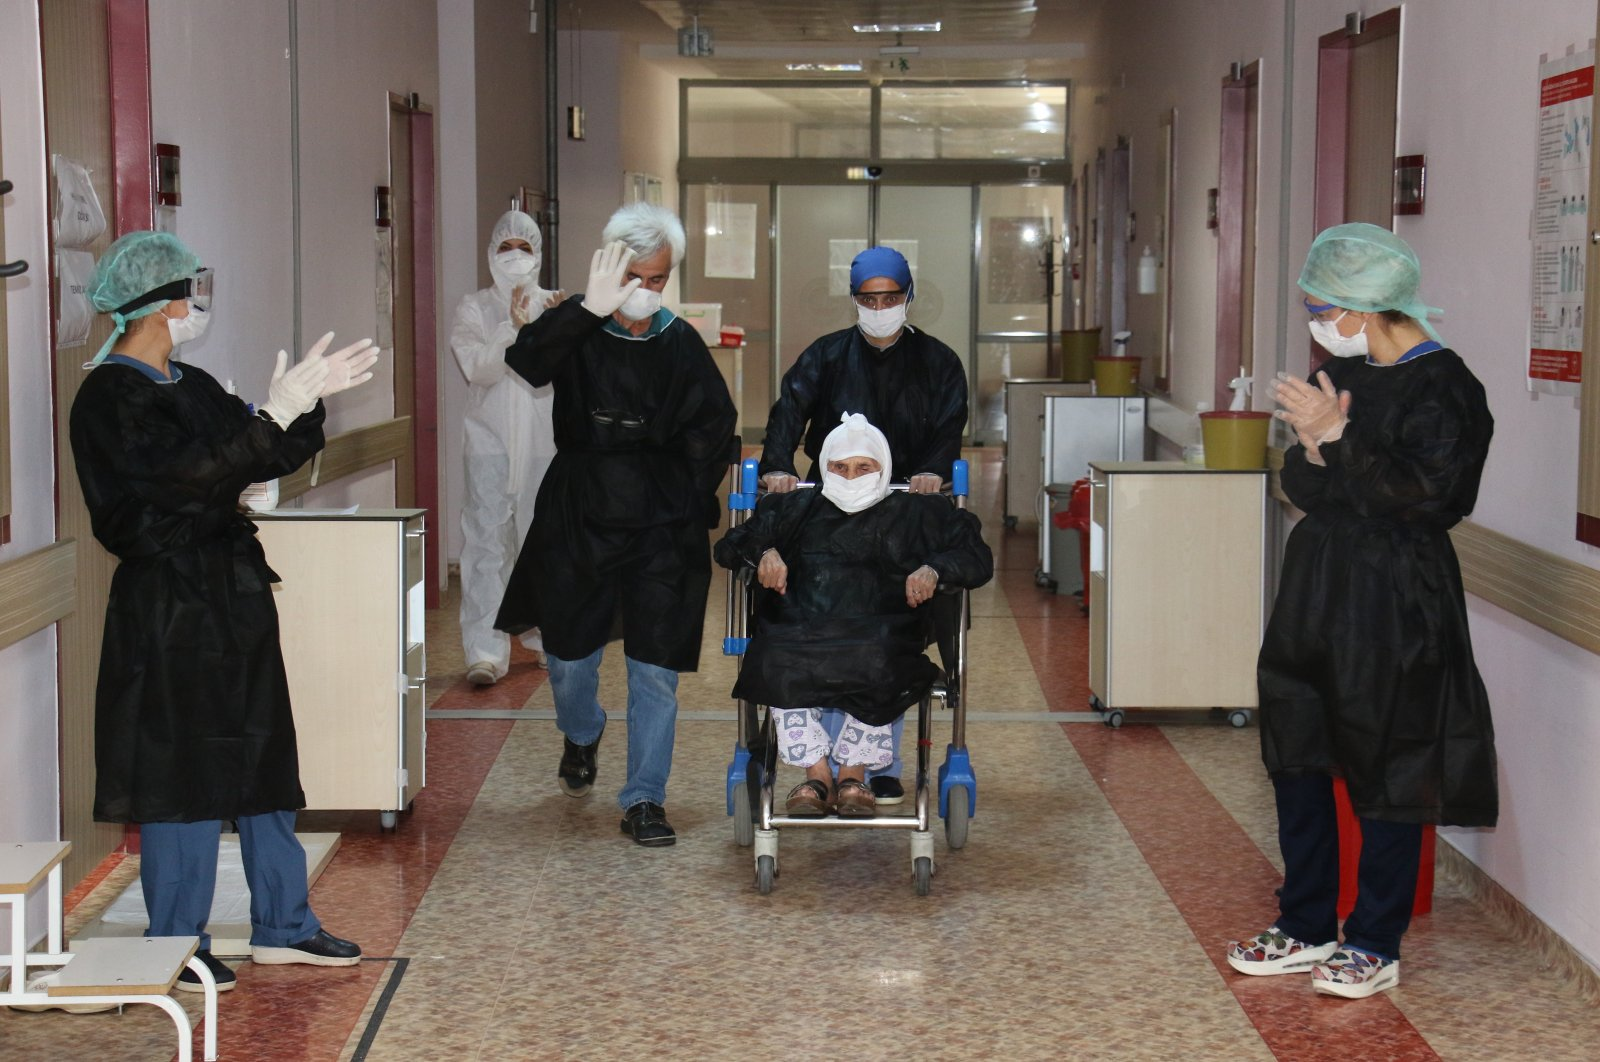 Arife Nalbant, a 104-year-old woman, leaves a hospital after recovering from COVID-19, in the capital Ankara, Turkey, Sept. 4, 2020. (İHA Photo)